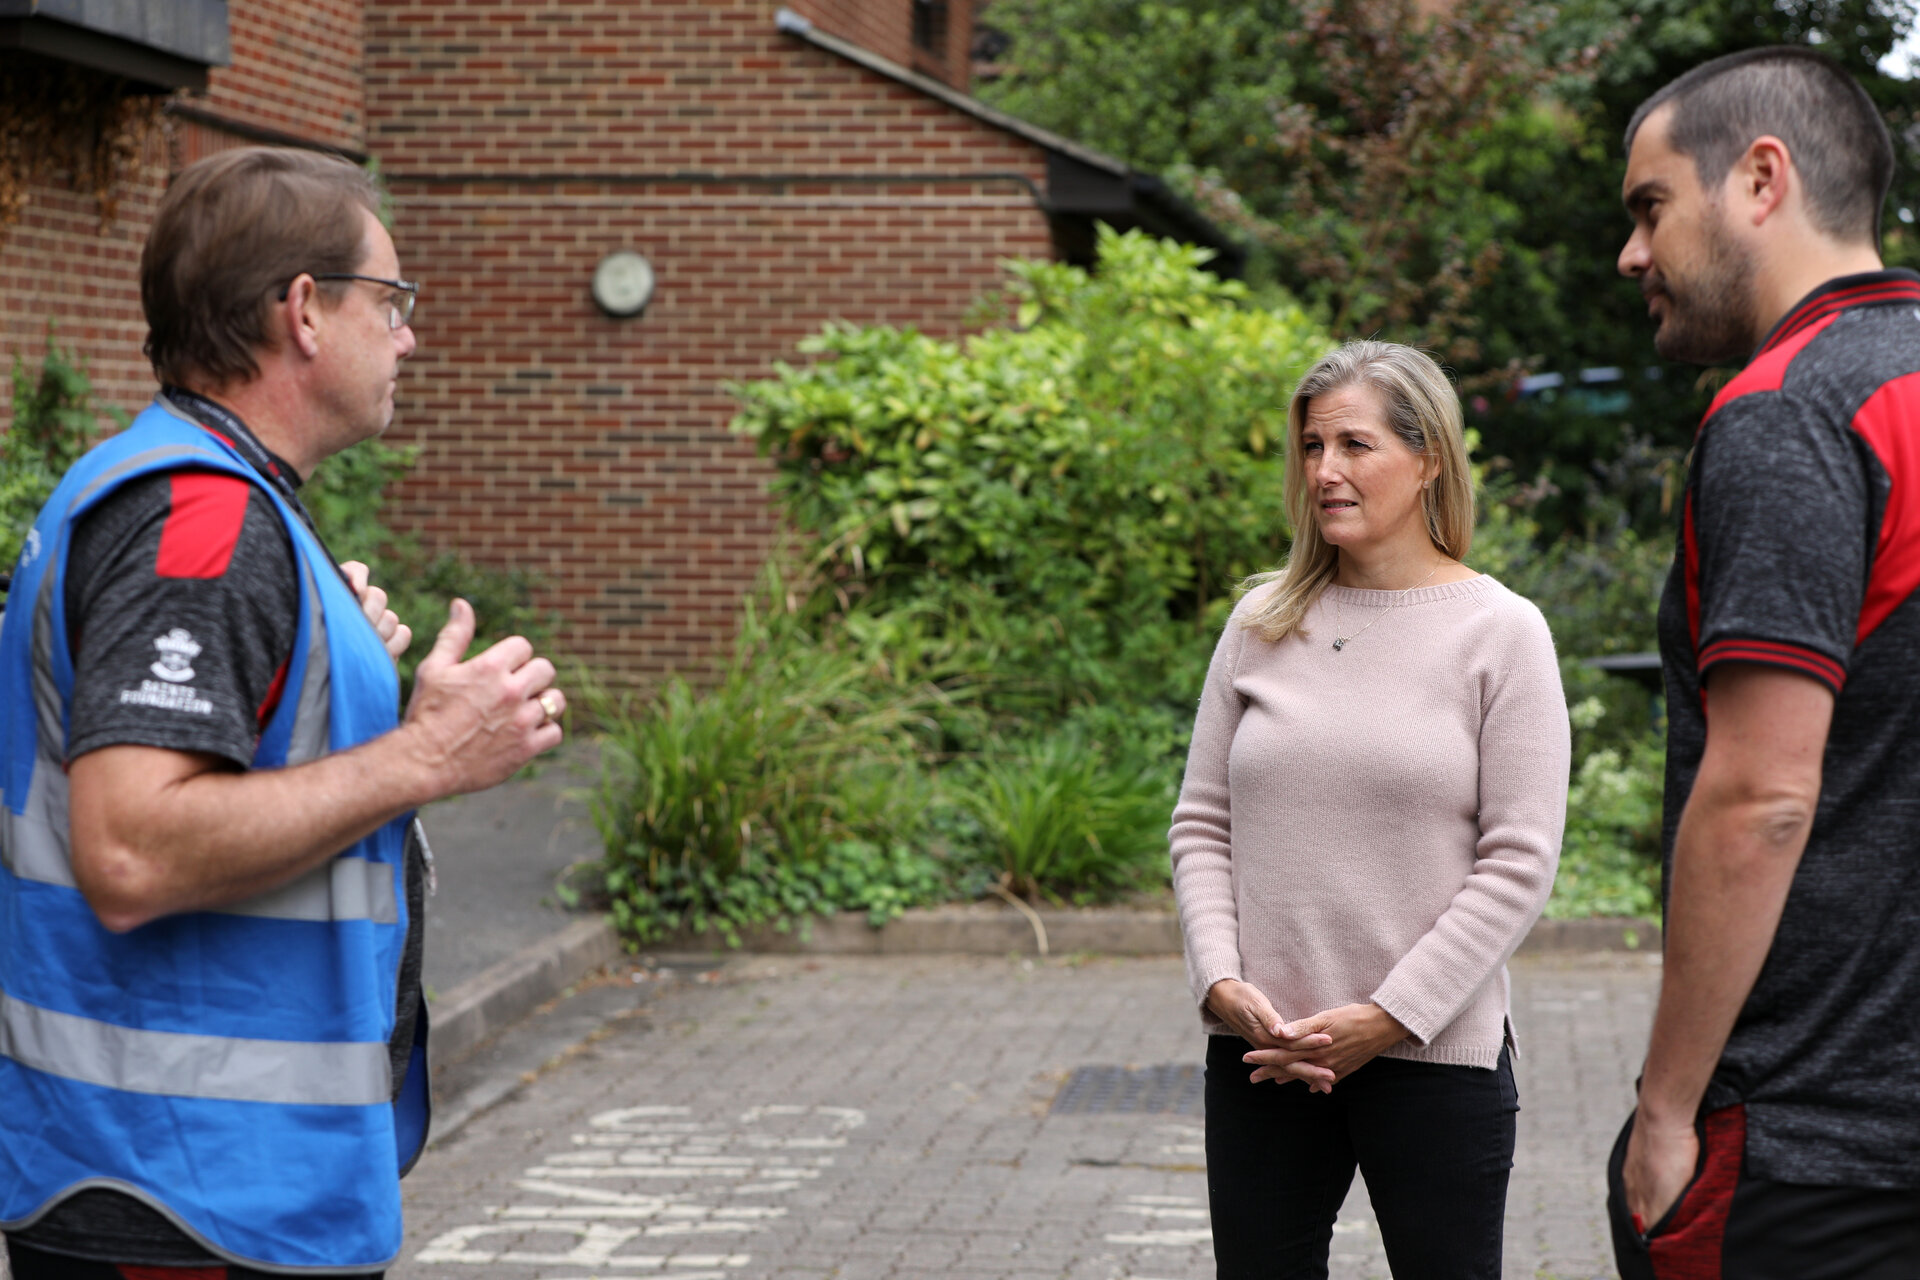 Visit of Sophie, Countess of Wessex, to Kerrigan Court, Westwood Rd, Southampton, where she met Paul Hedges, left, from Saints Foundation and learnt about his work Picture: Chris Moorhouse Tuesday 9th June 2020